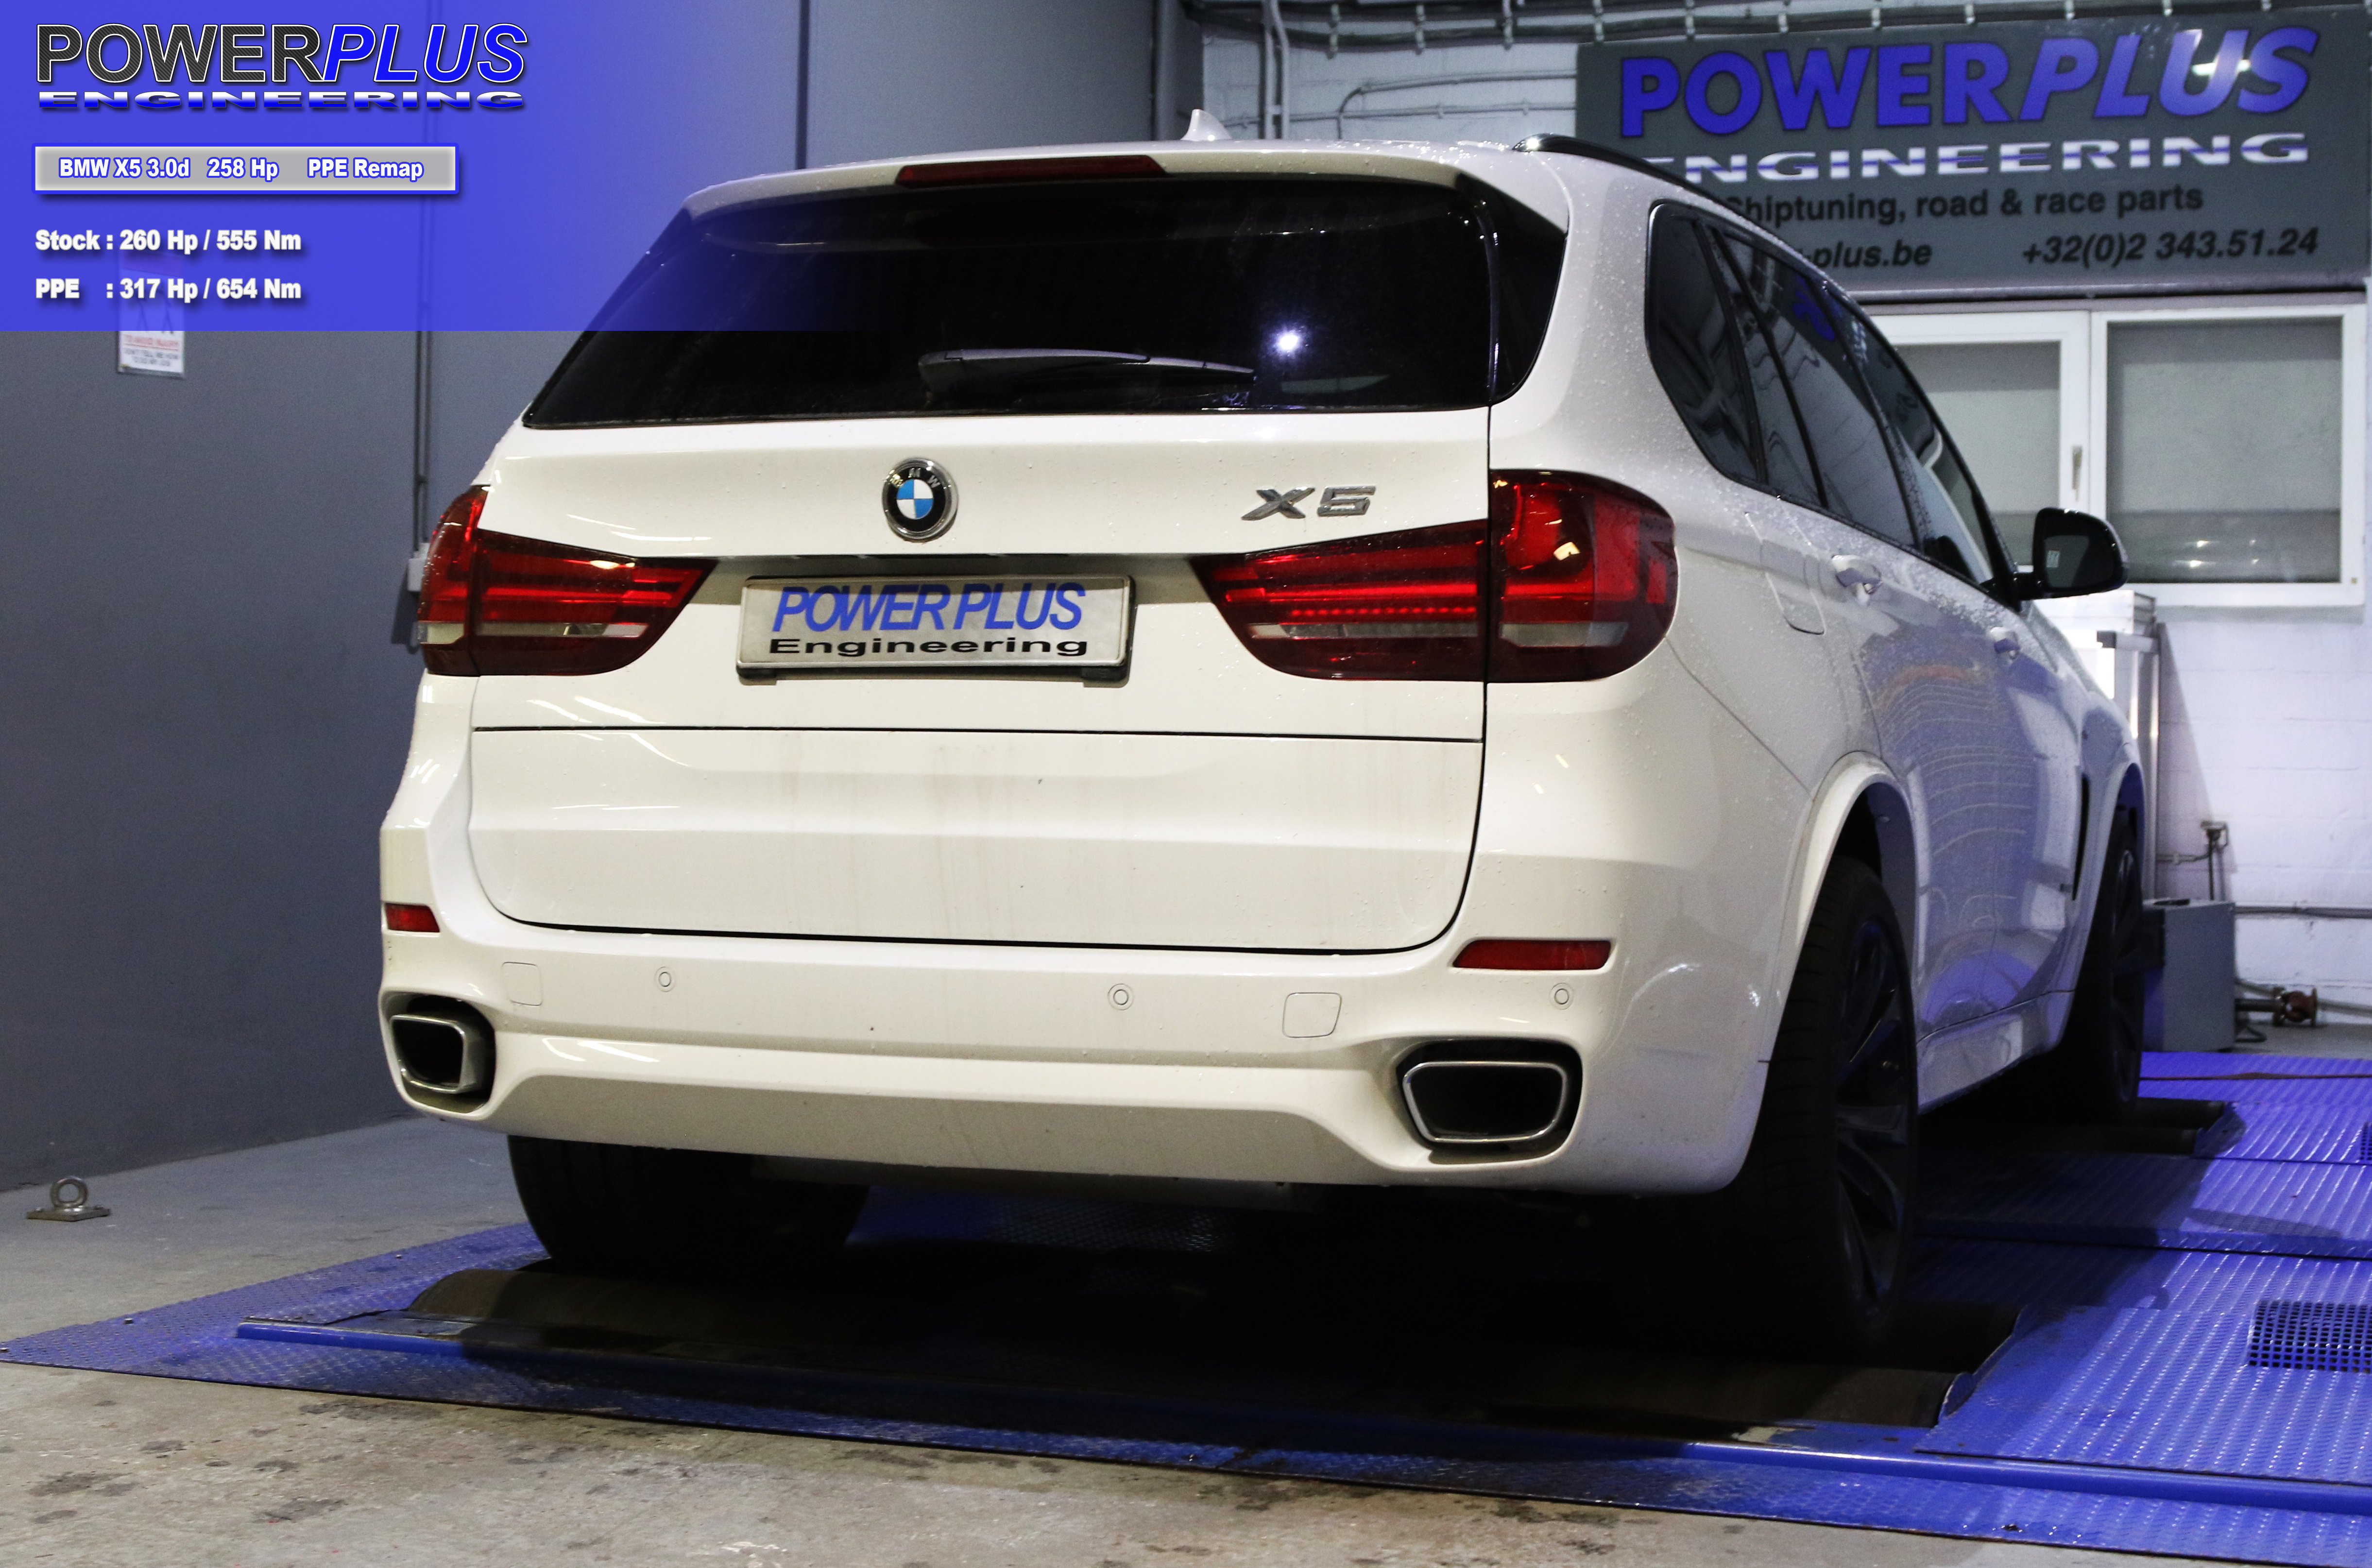 BMW X5 3 0d 258 Hp remapped to 317 Hp & 654 Nm